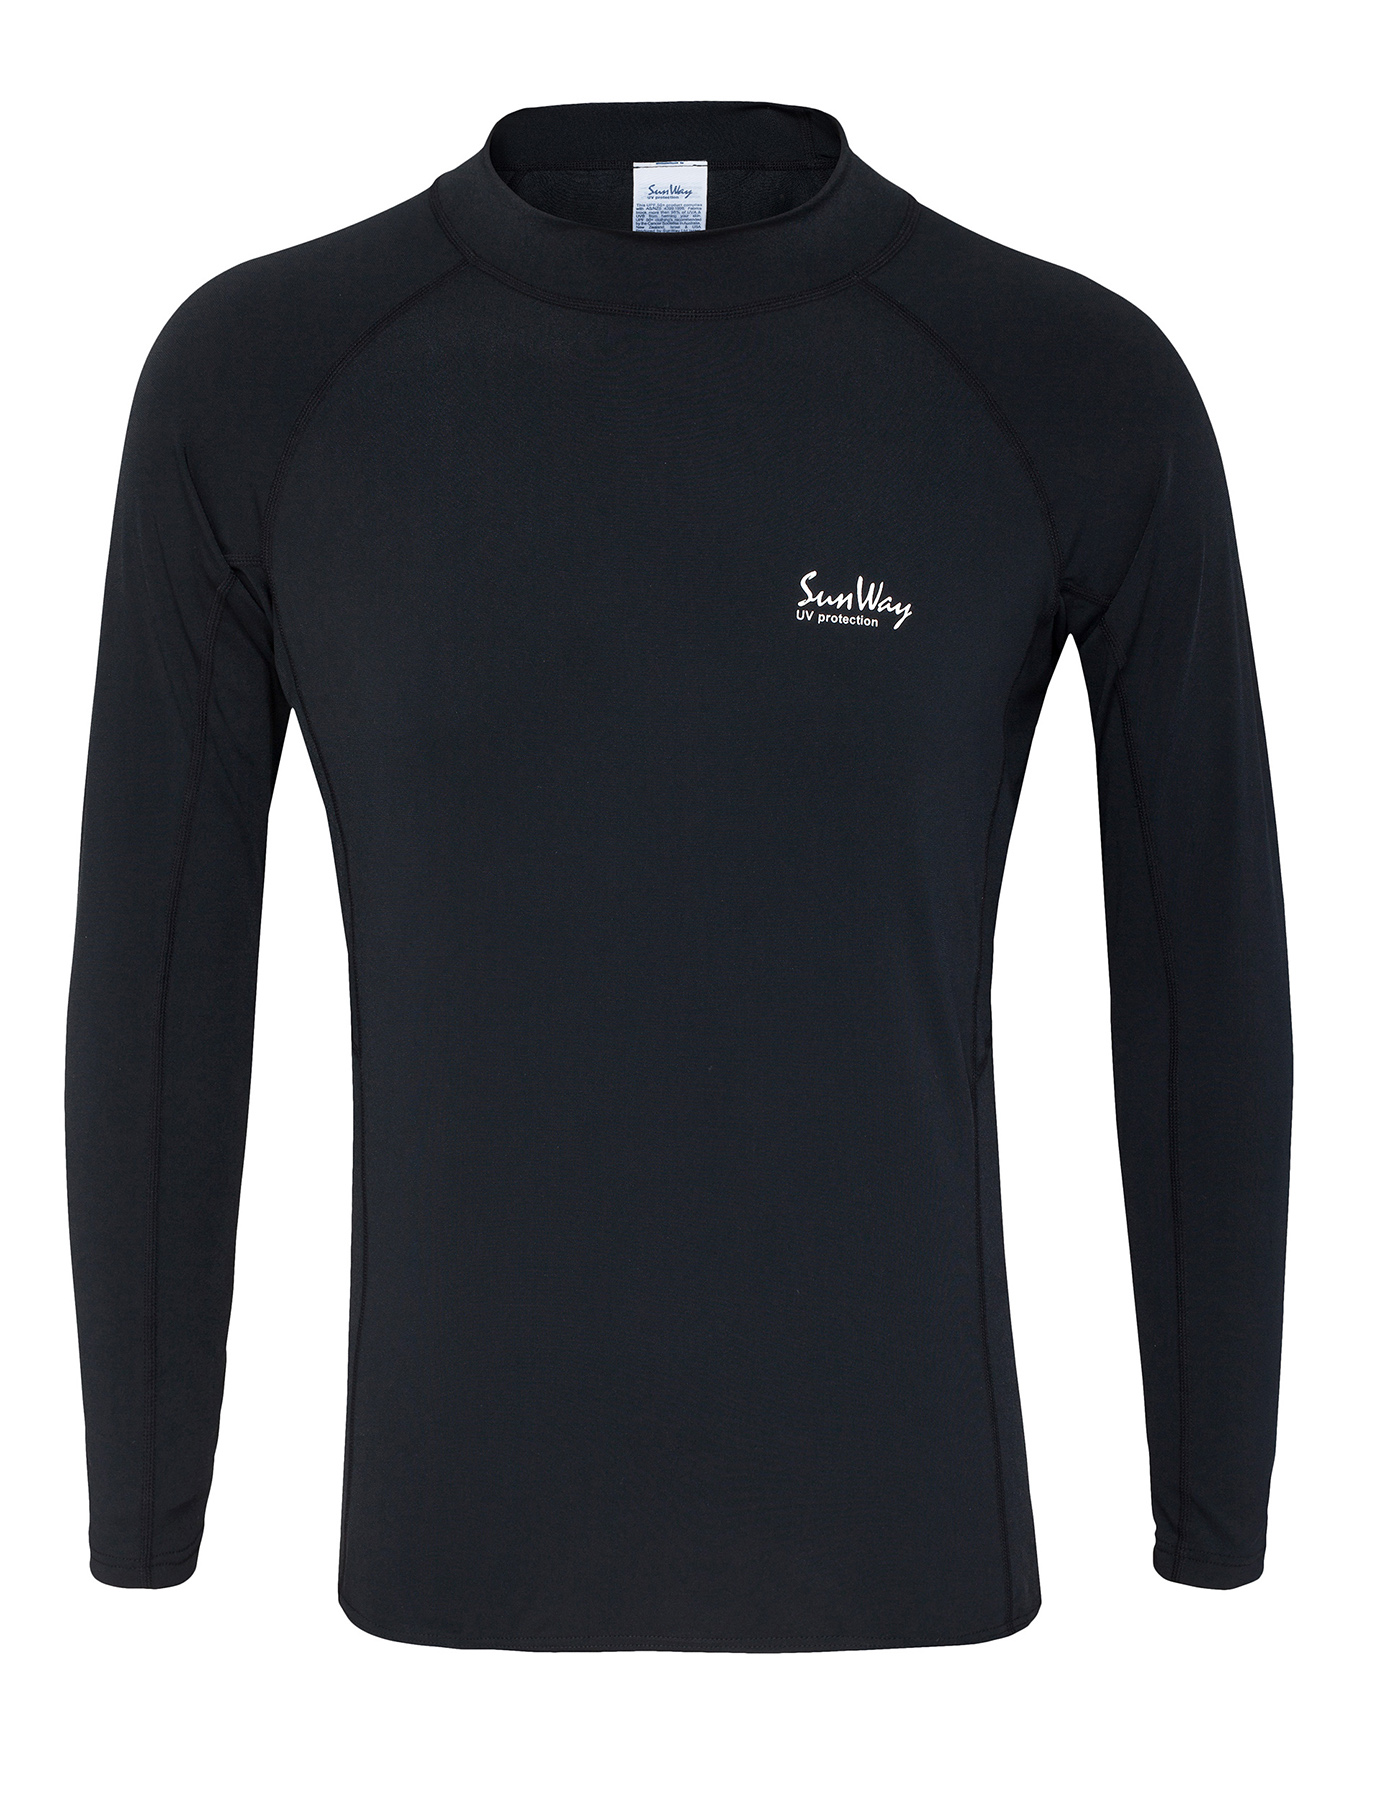 UPF 50+ Men's Long-Sleeve Rash Guard Shirt